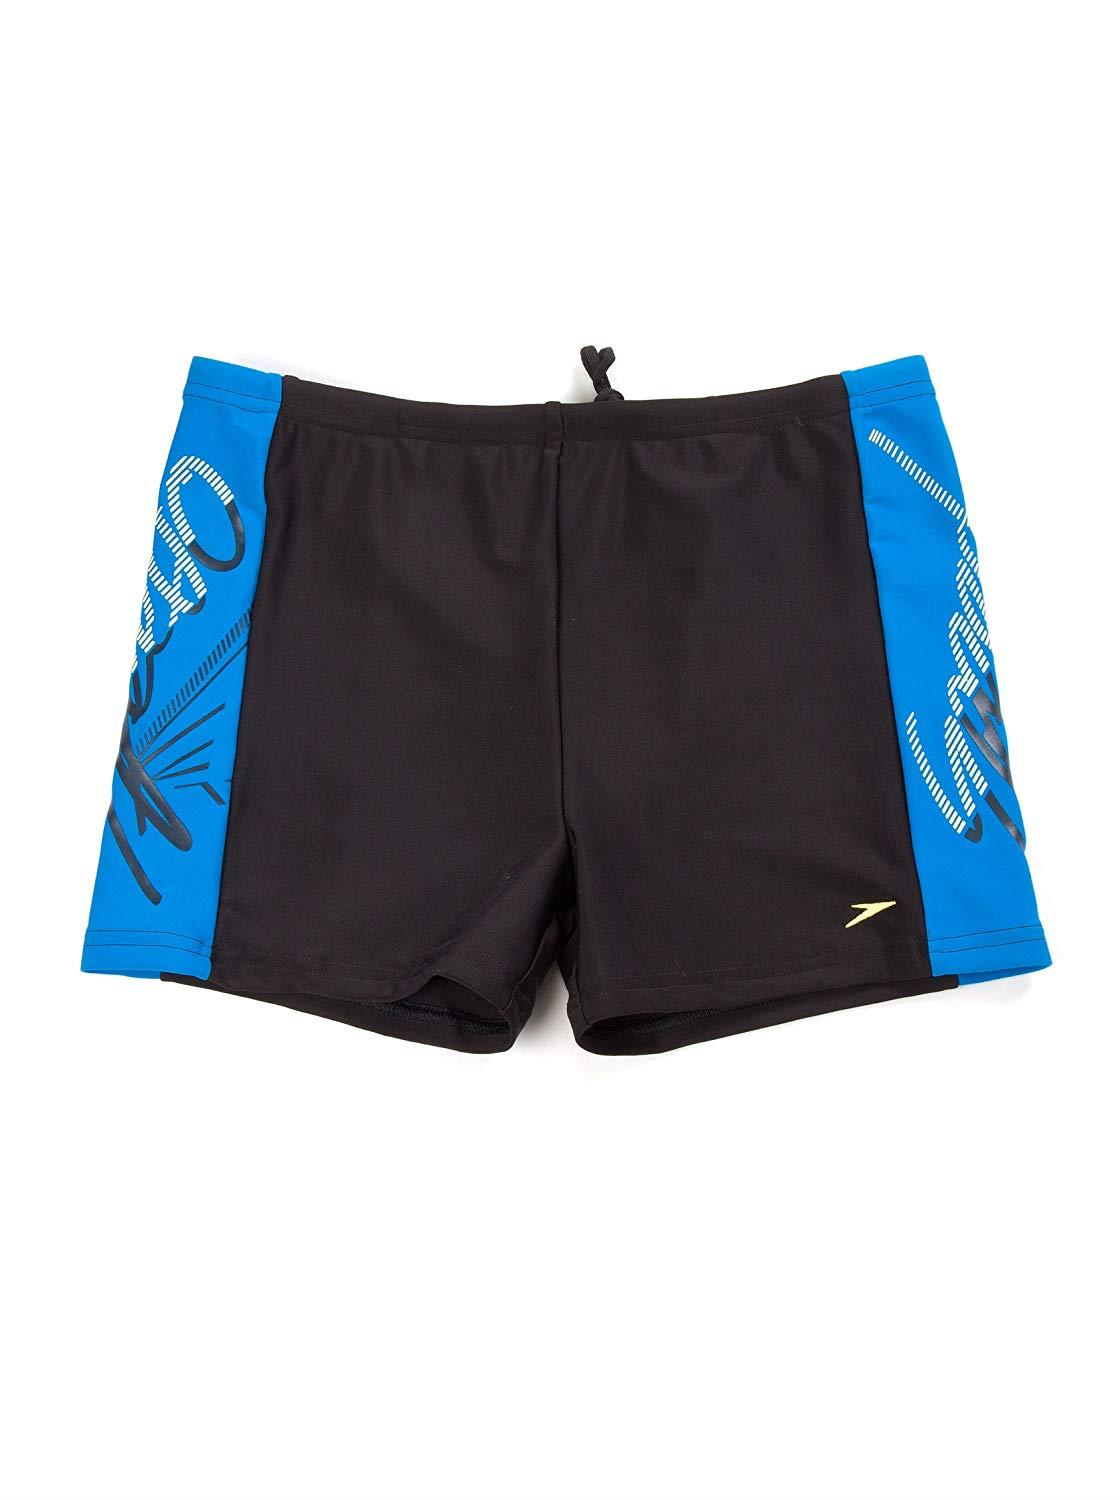 Speedo Ayrton Pnl Asht Jm Black/Blue Mayo Sp8053967967